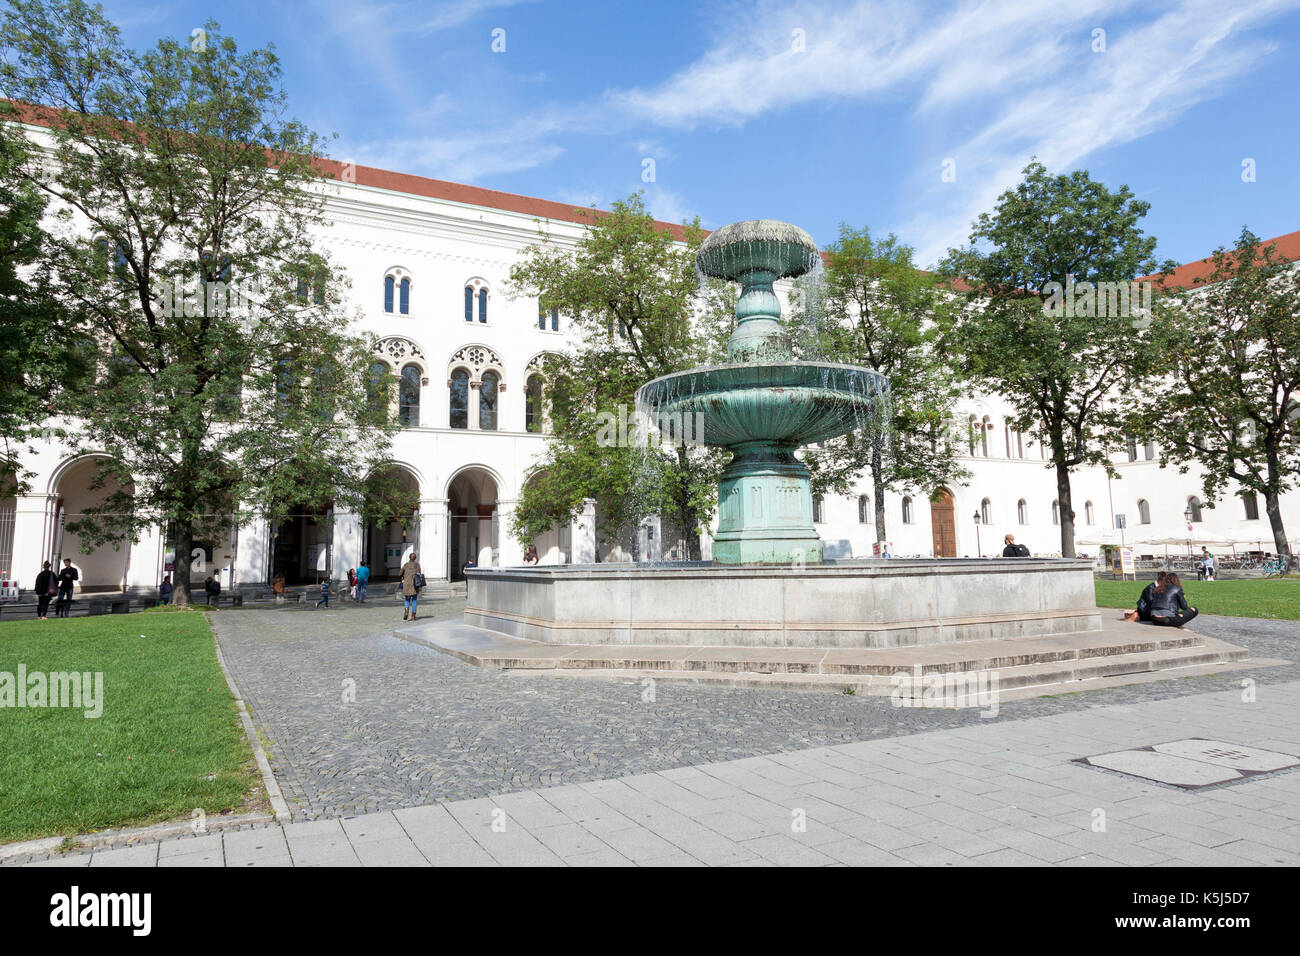 University of Munich with fountain feature - Stock Image